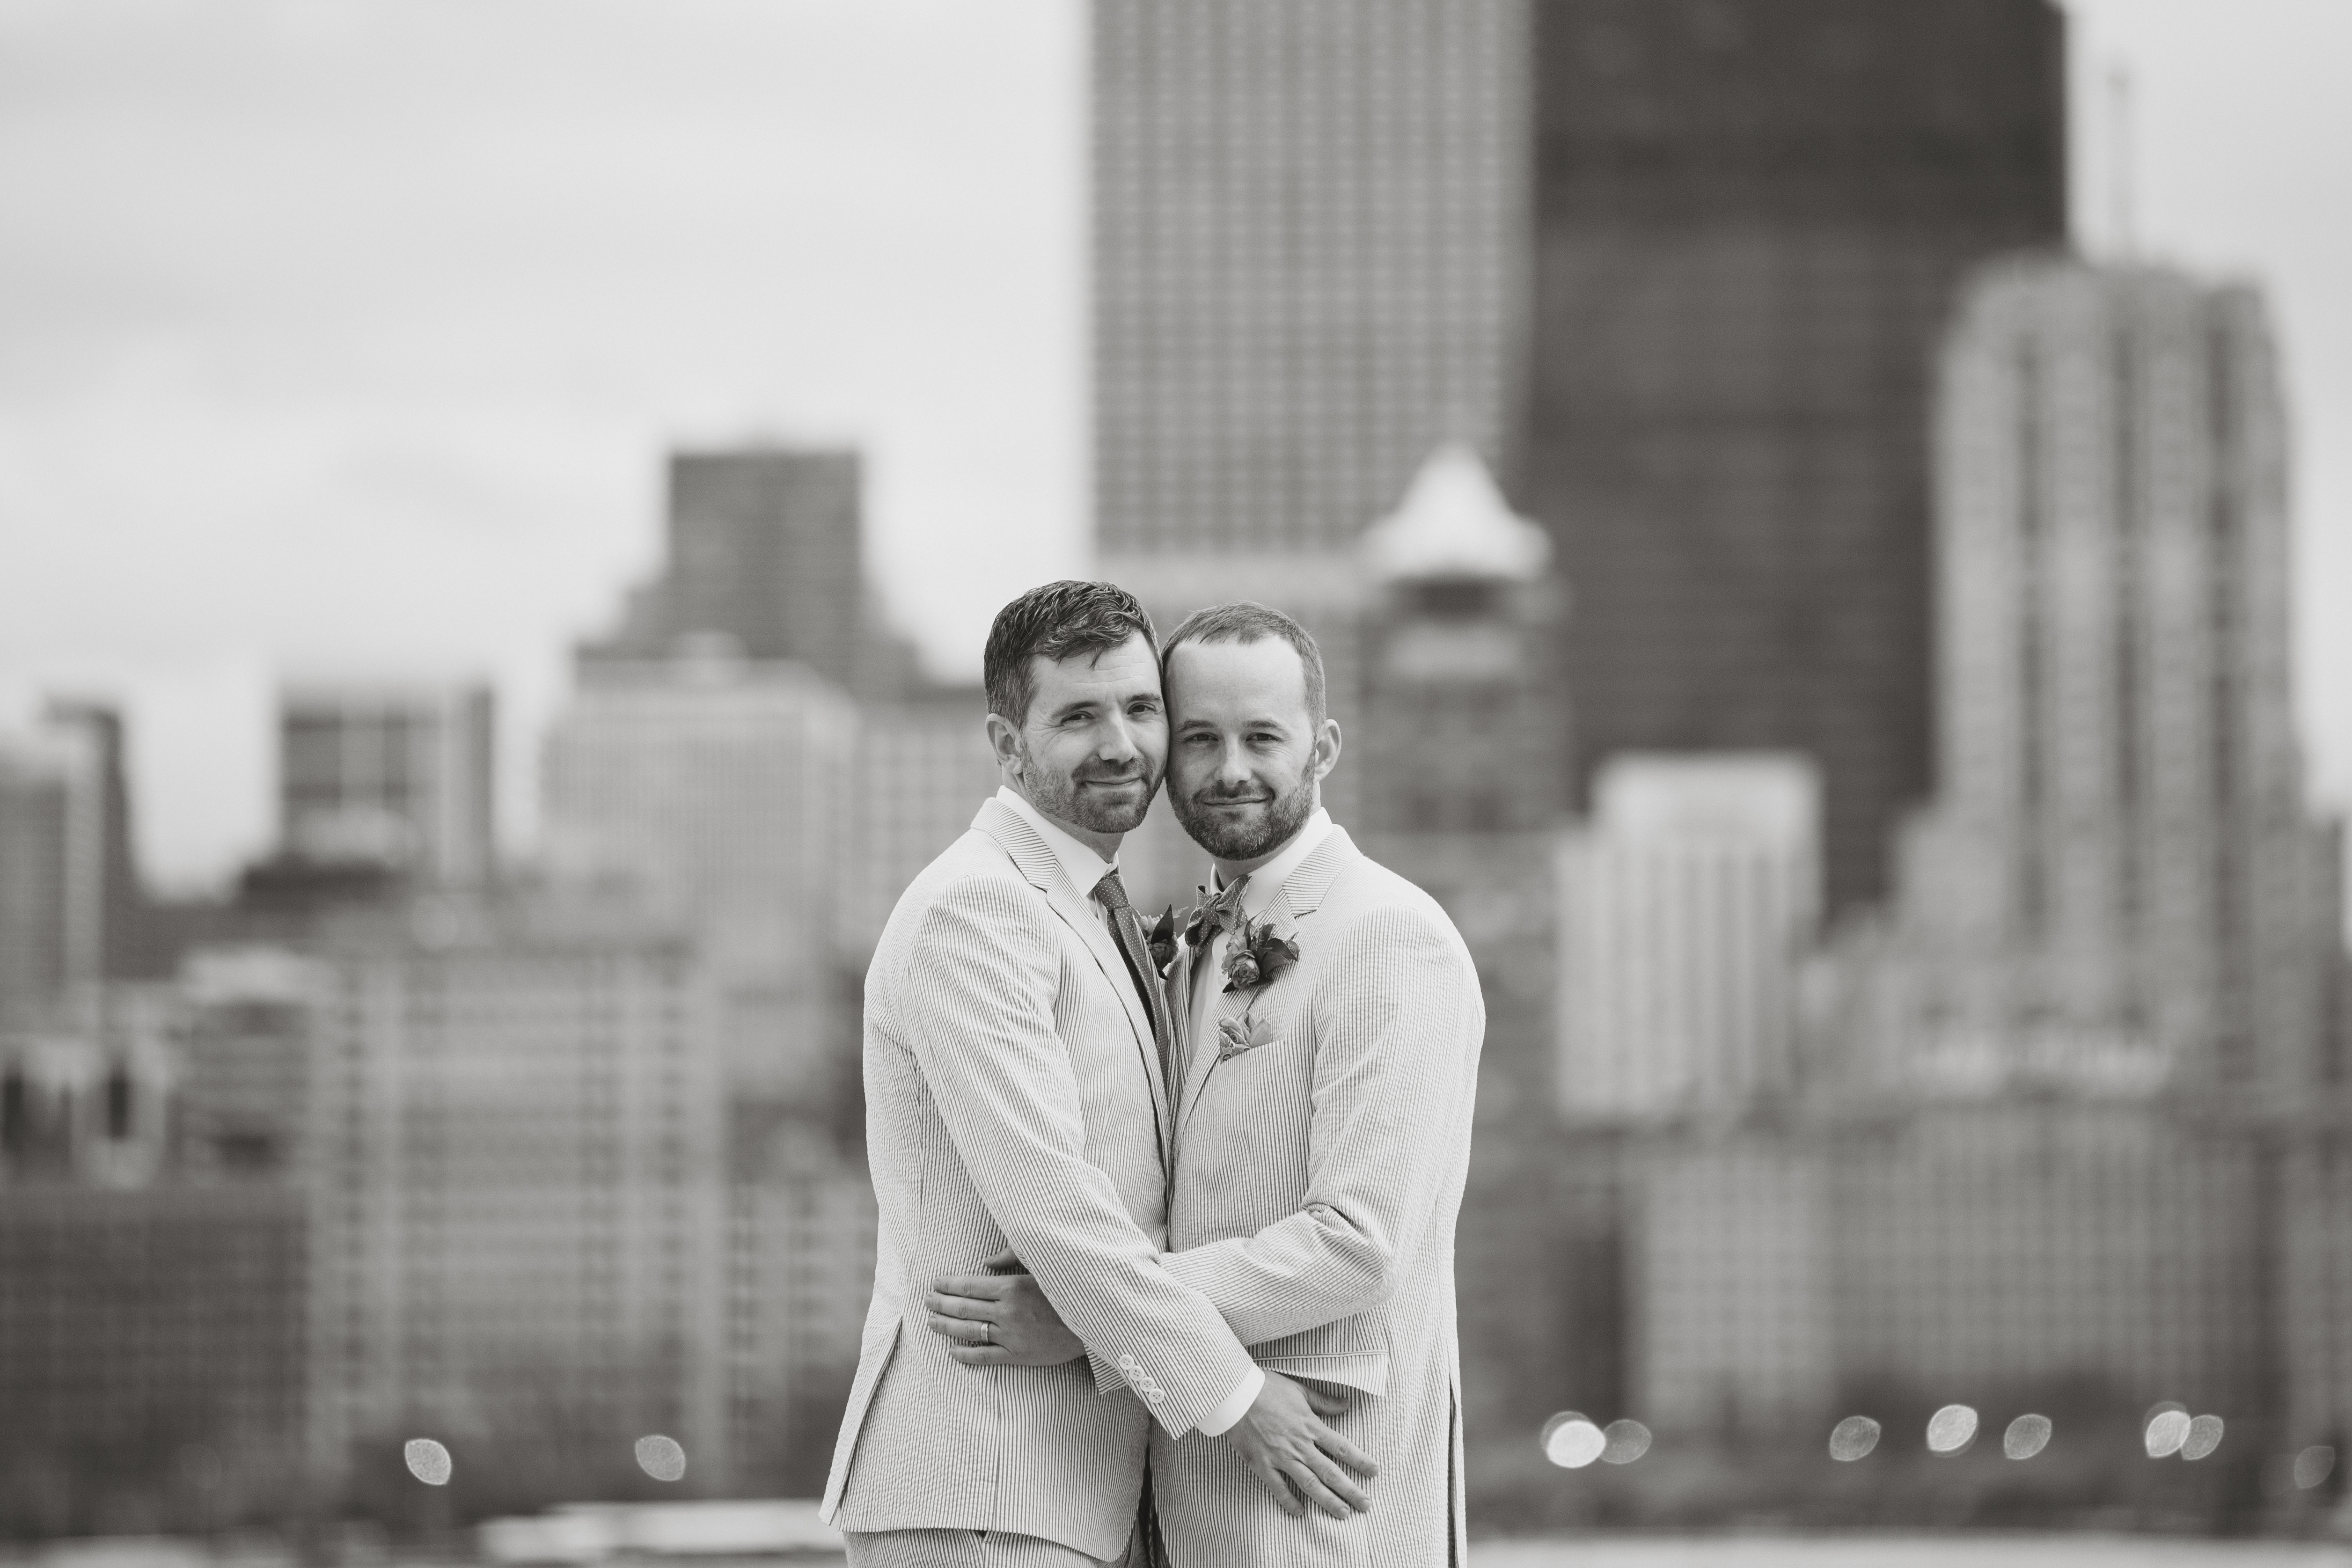 Toby and Brian – Spring Chicago wedding at Kaiser Tiger